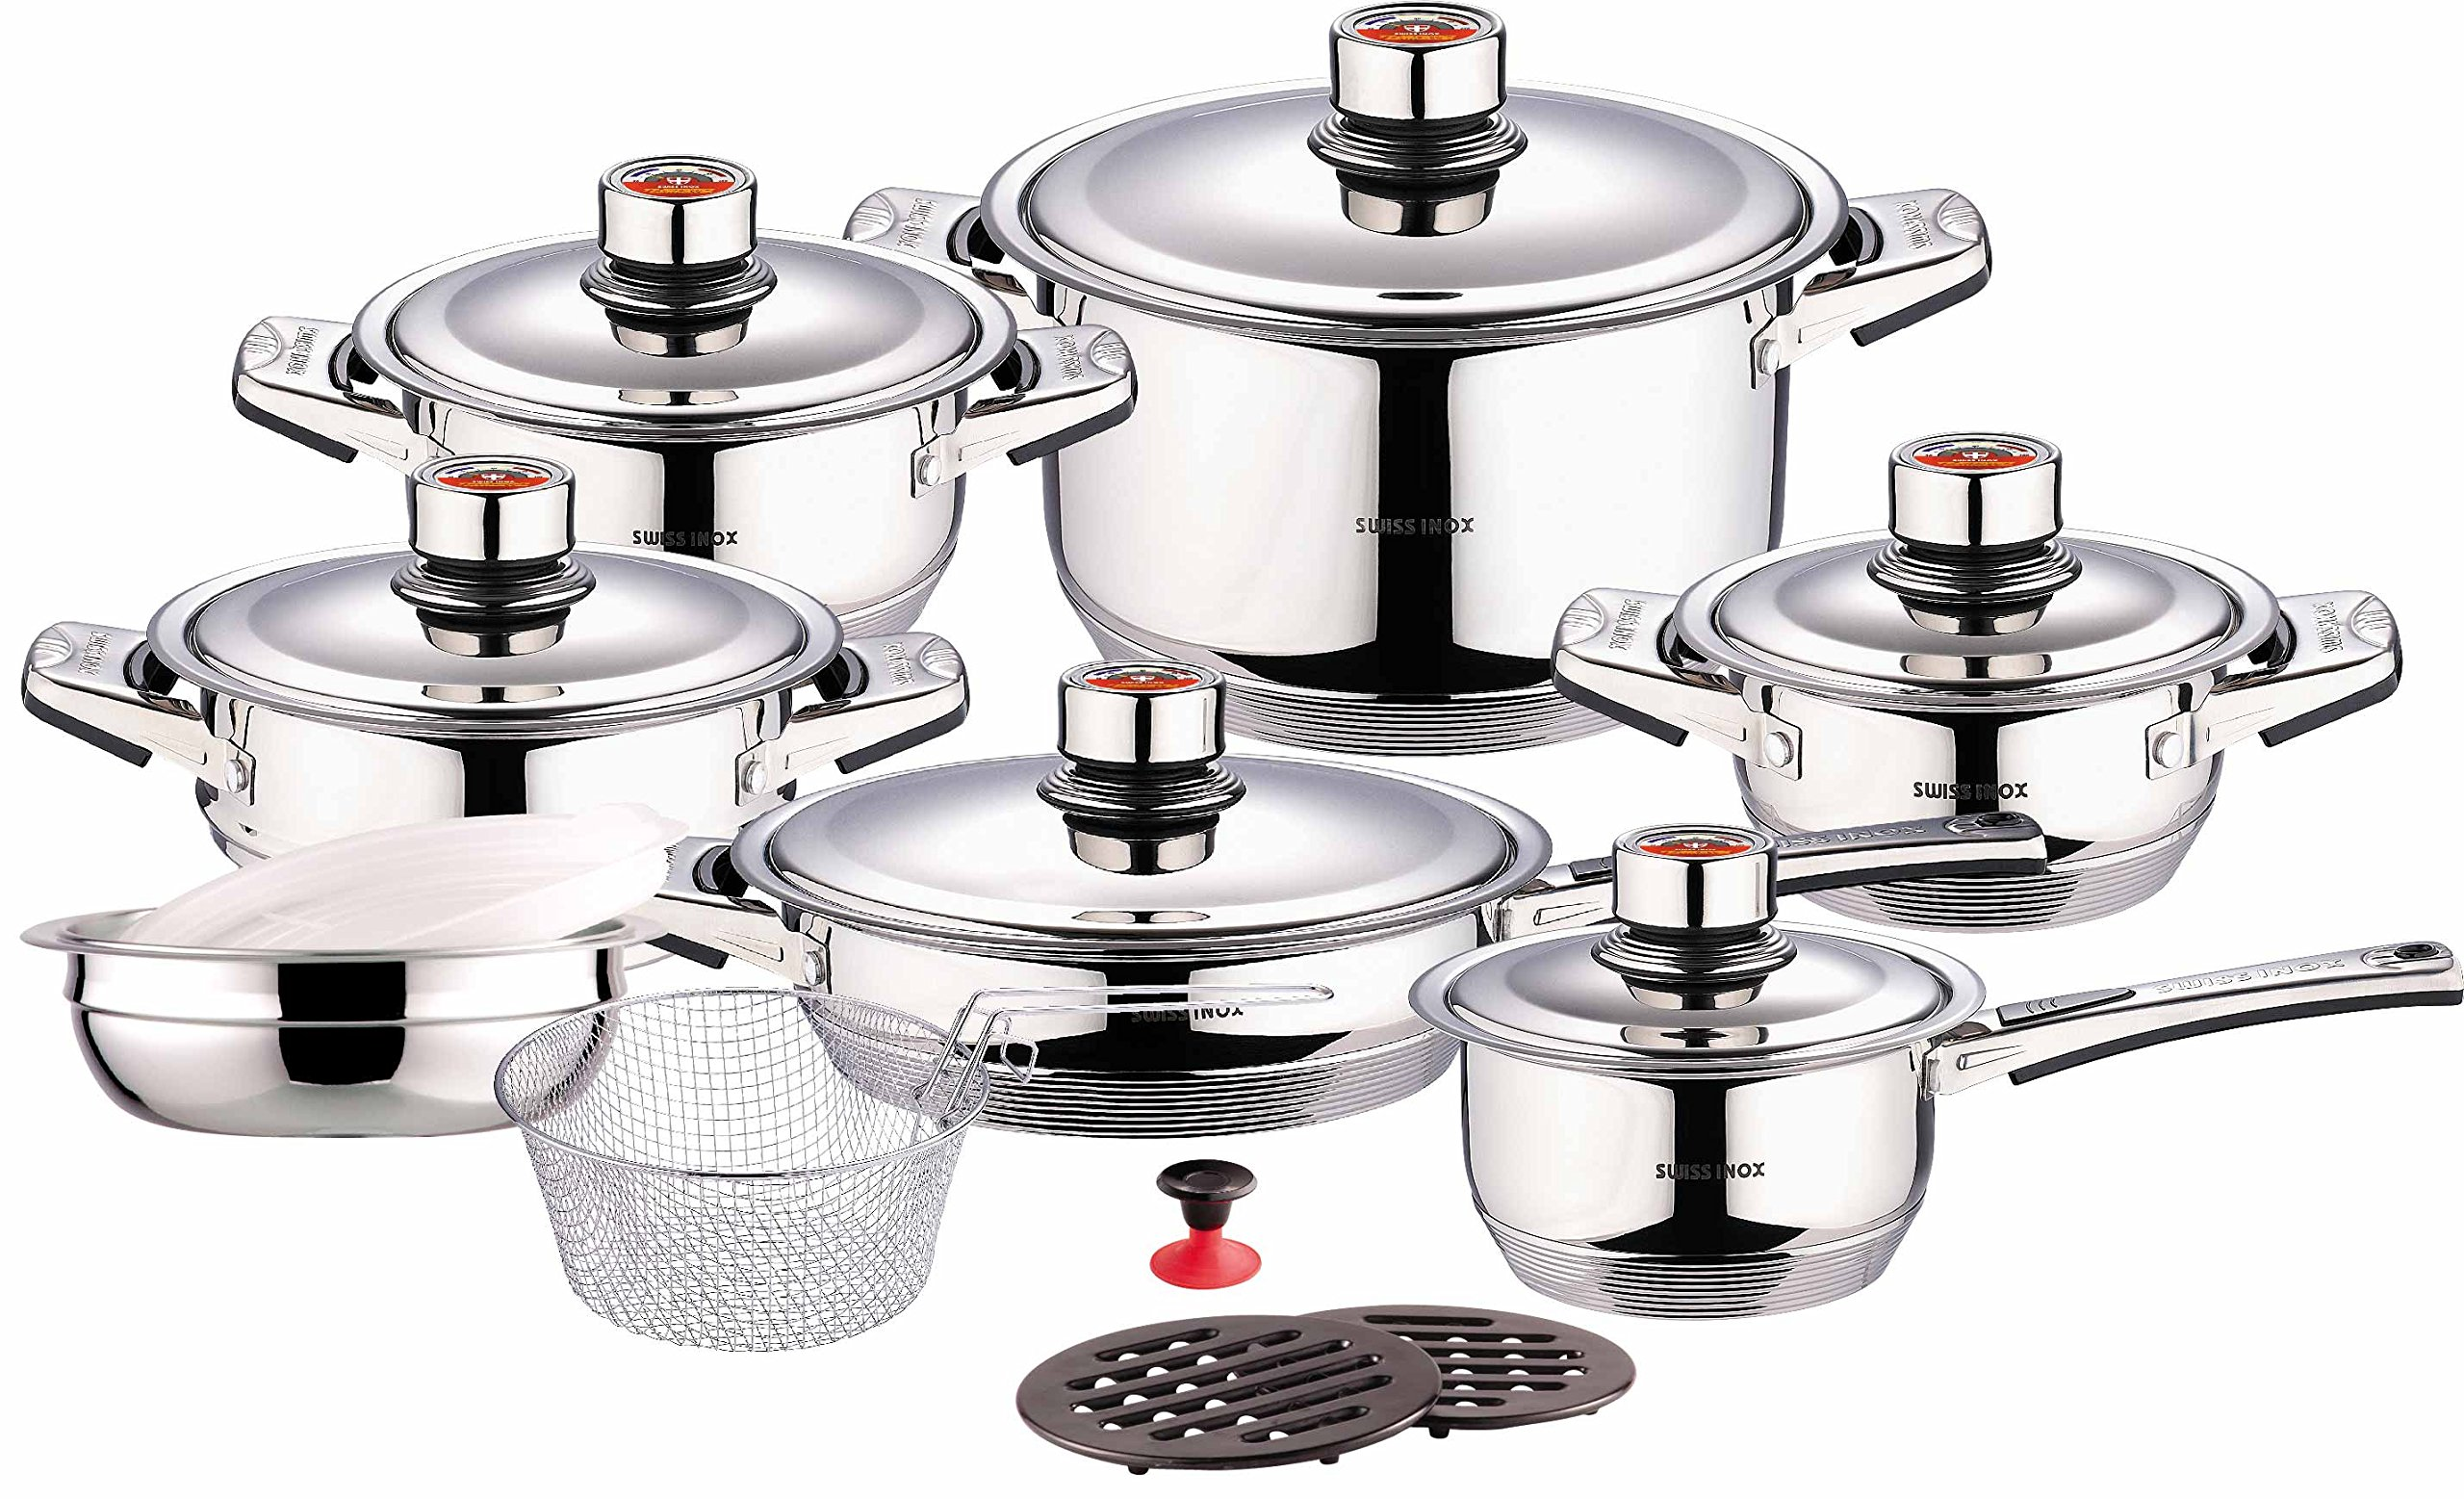 Swiss Inox Si 7000 Stainless Compatible